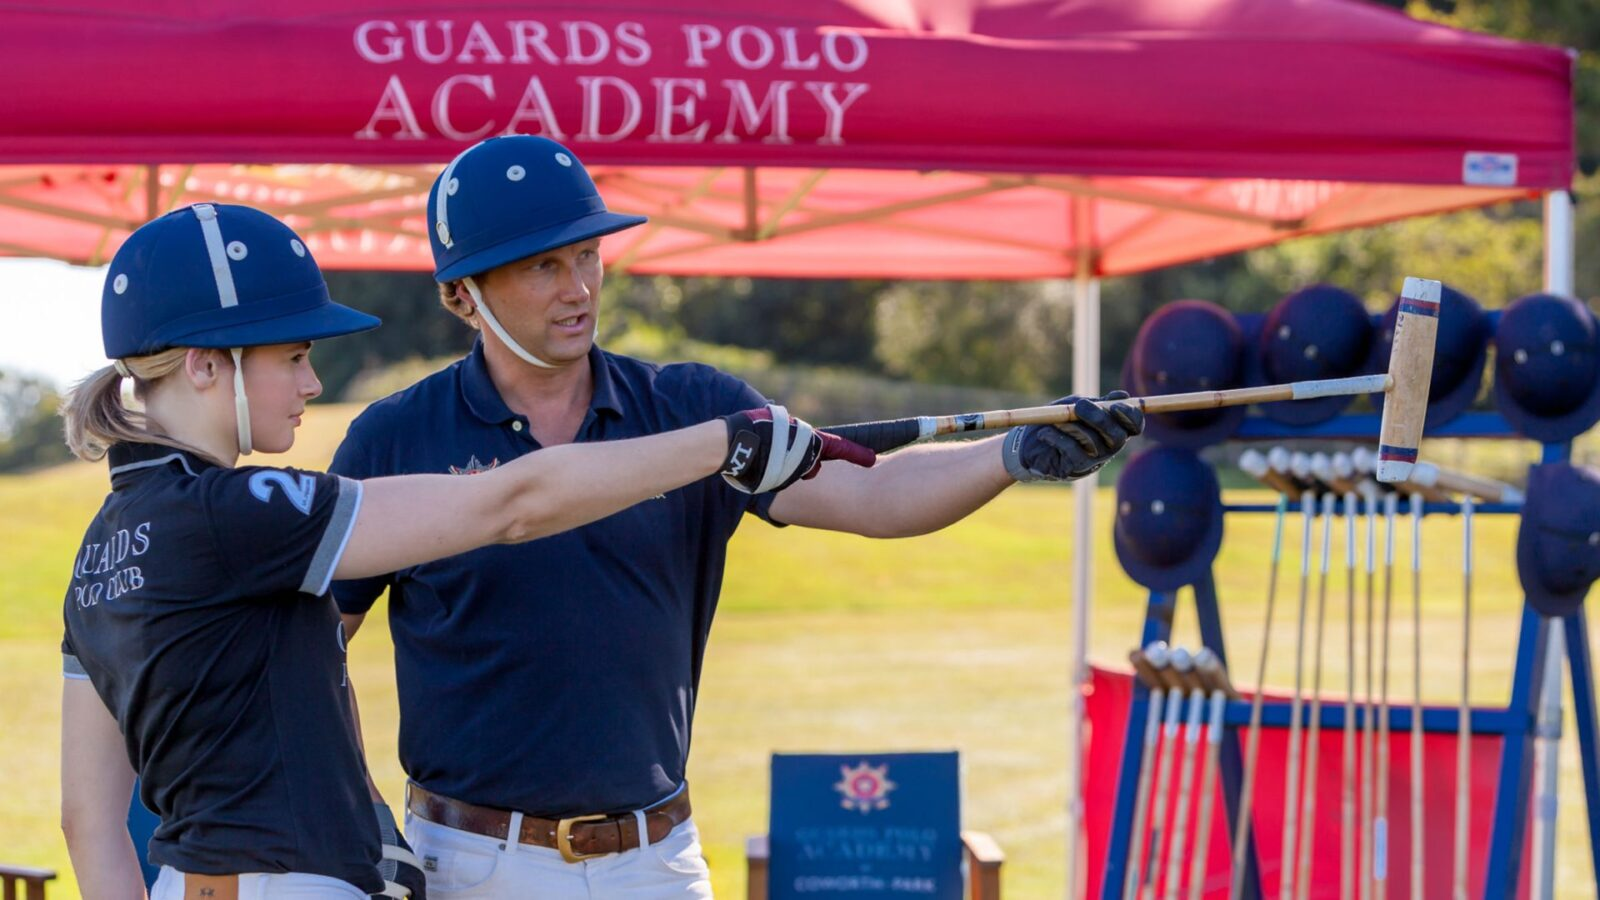 Guards Polo Academy at Coworth Park